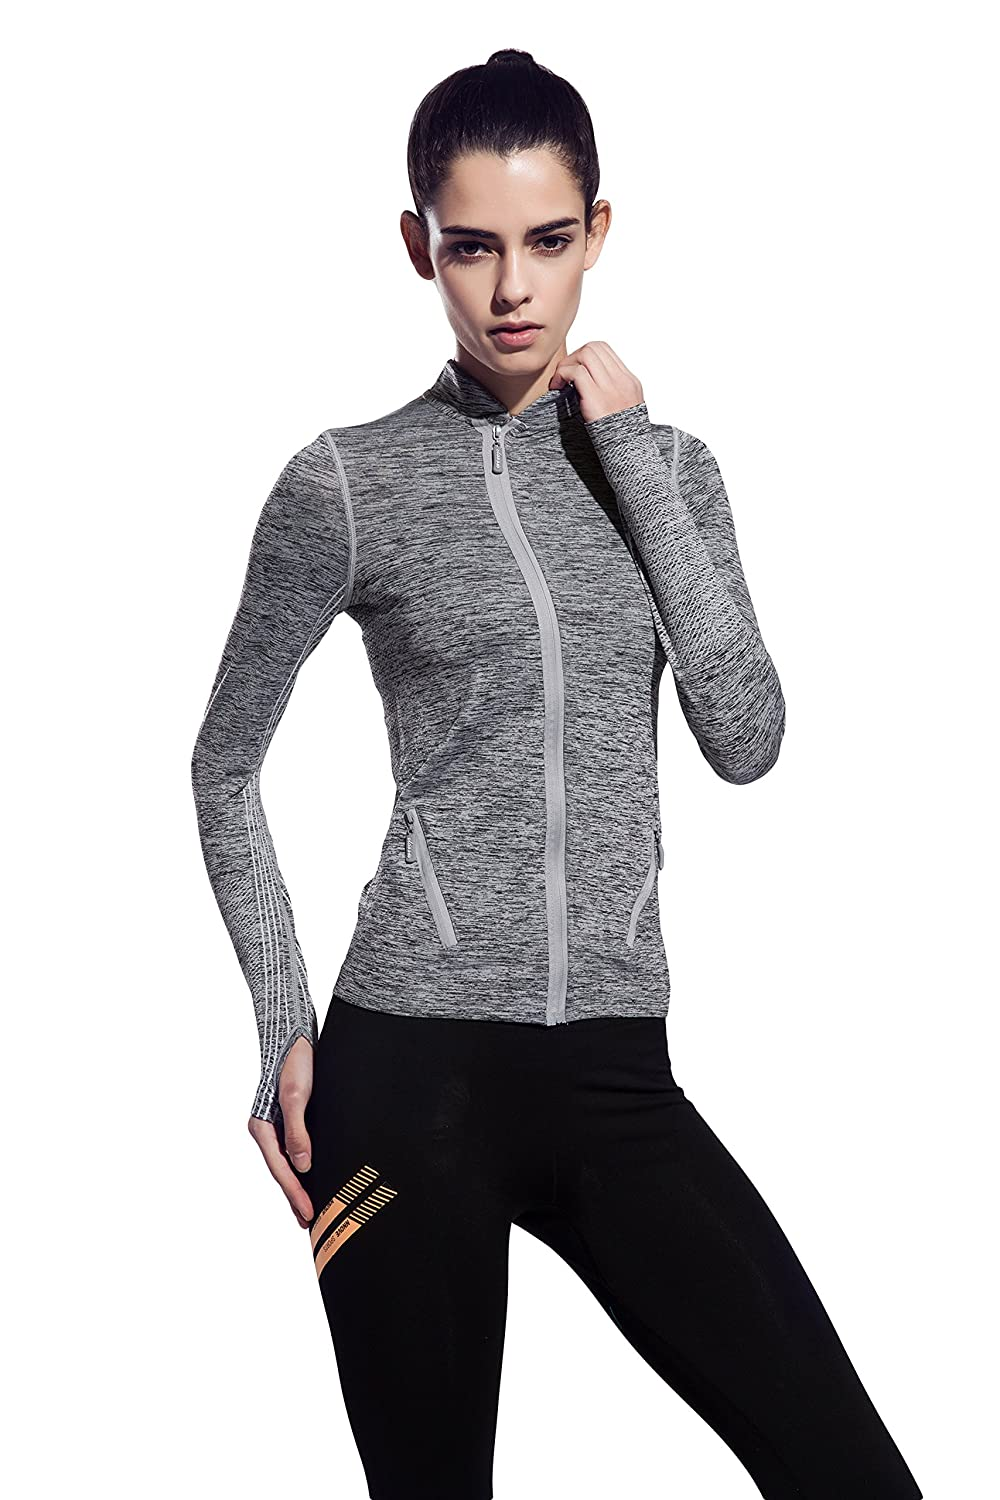 Women's Stretchy Workout Dri-Fit Hooded Jacket fy_020@us3